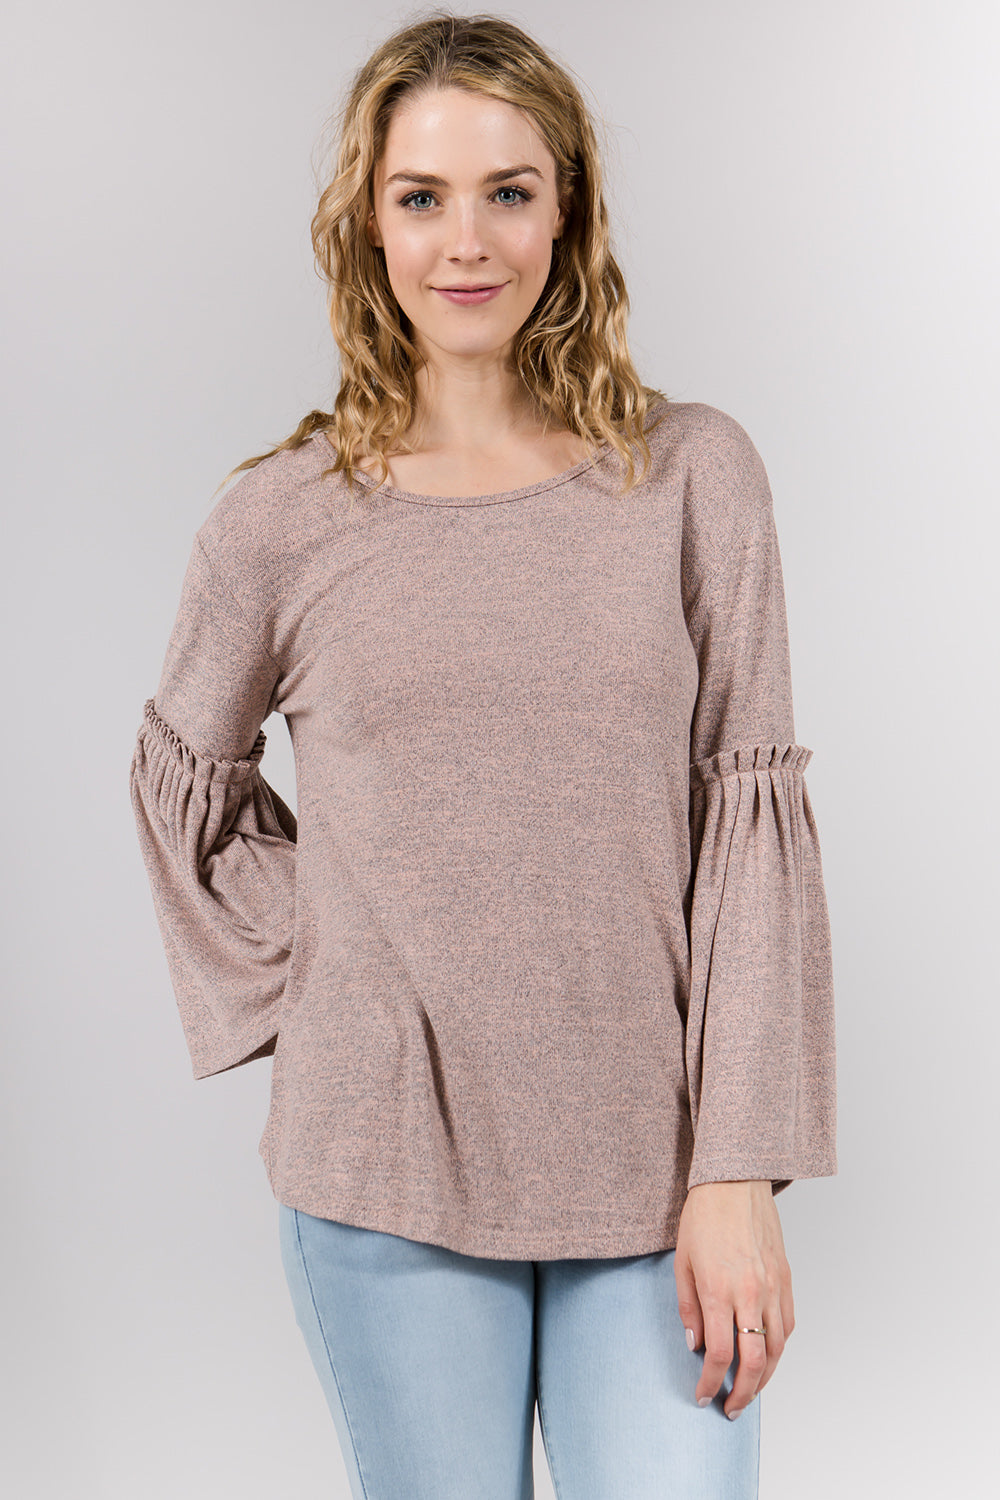 T2323 Pleated knit Top